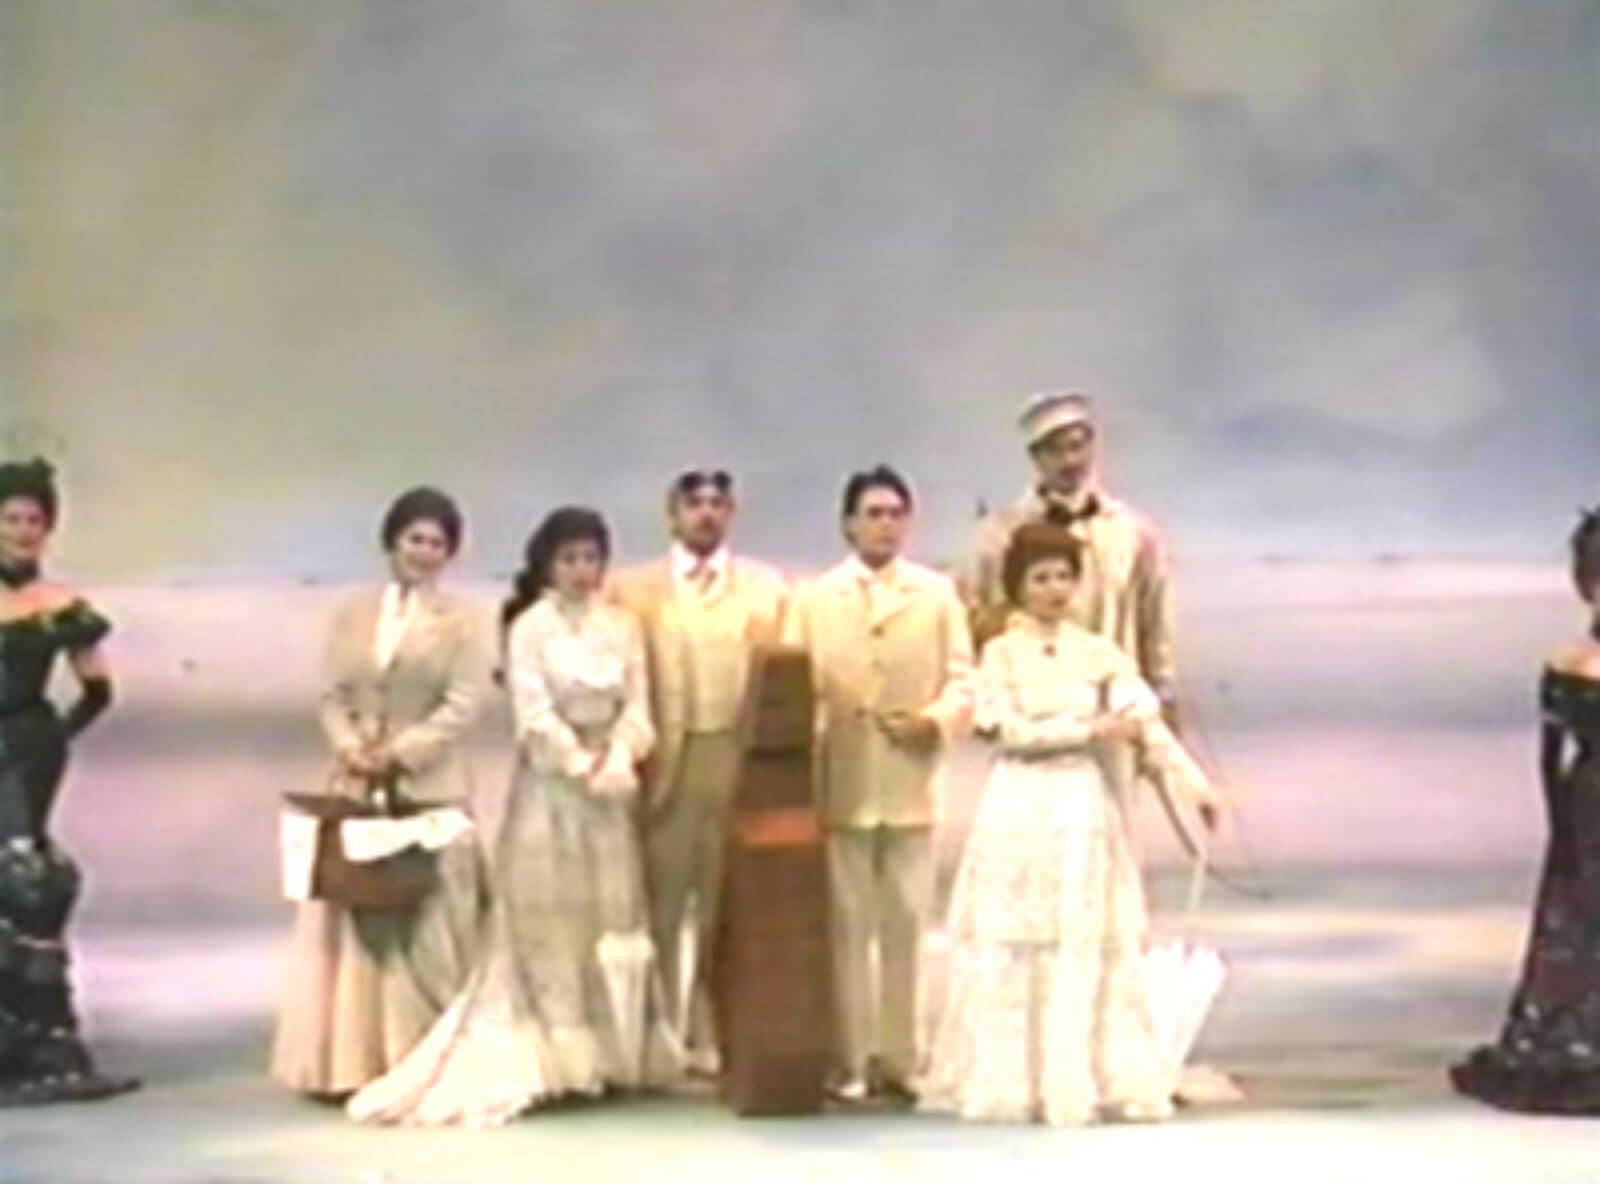 """The cast of A Little Night Music singing """"A Weekend in the Country"""". They are dressed in white traveling garb standing in front of a Monet-like background."""